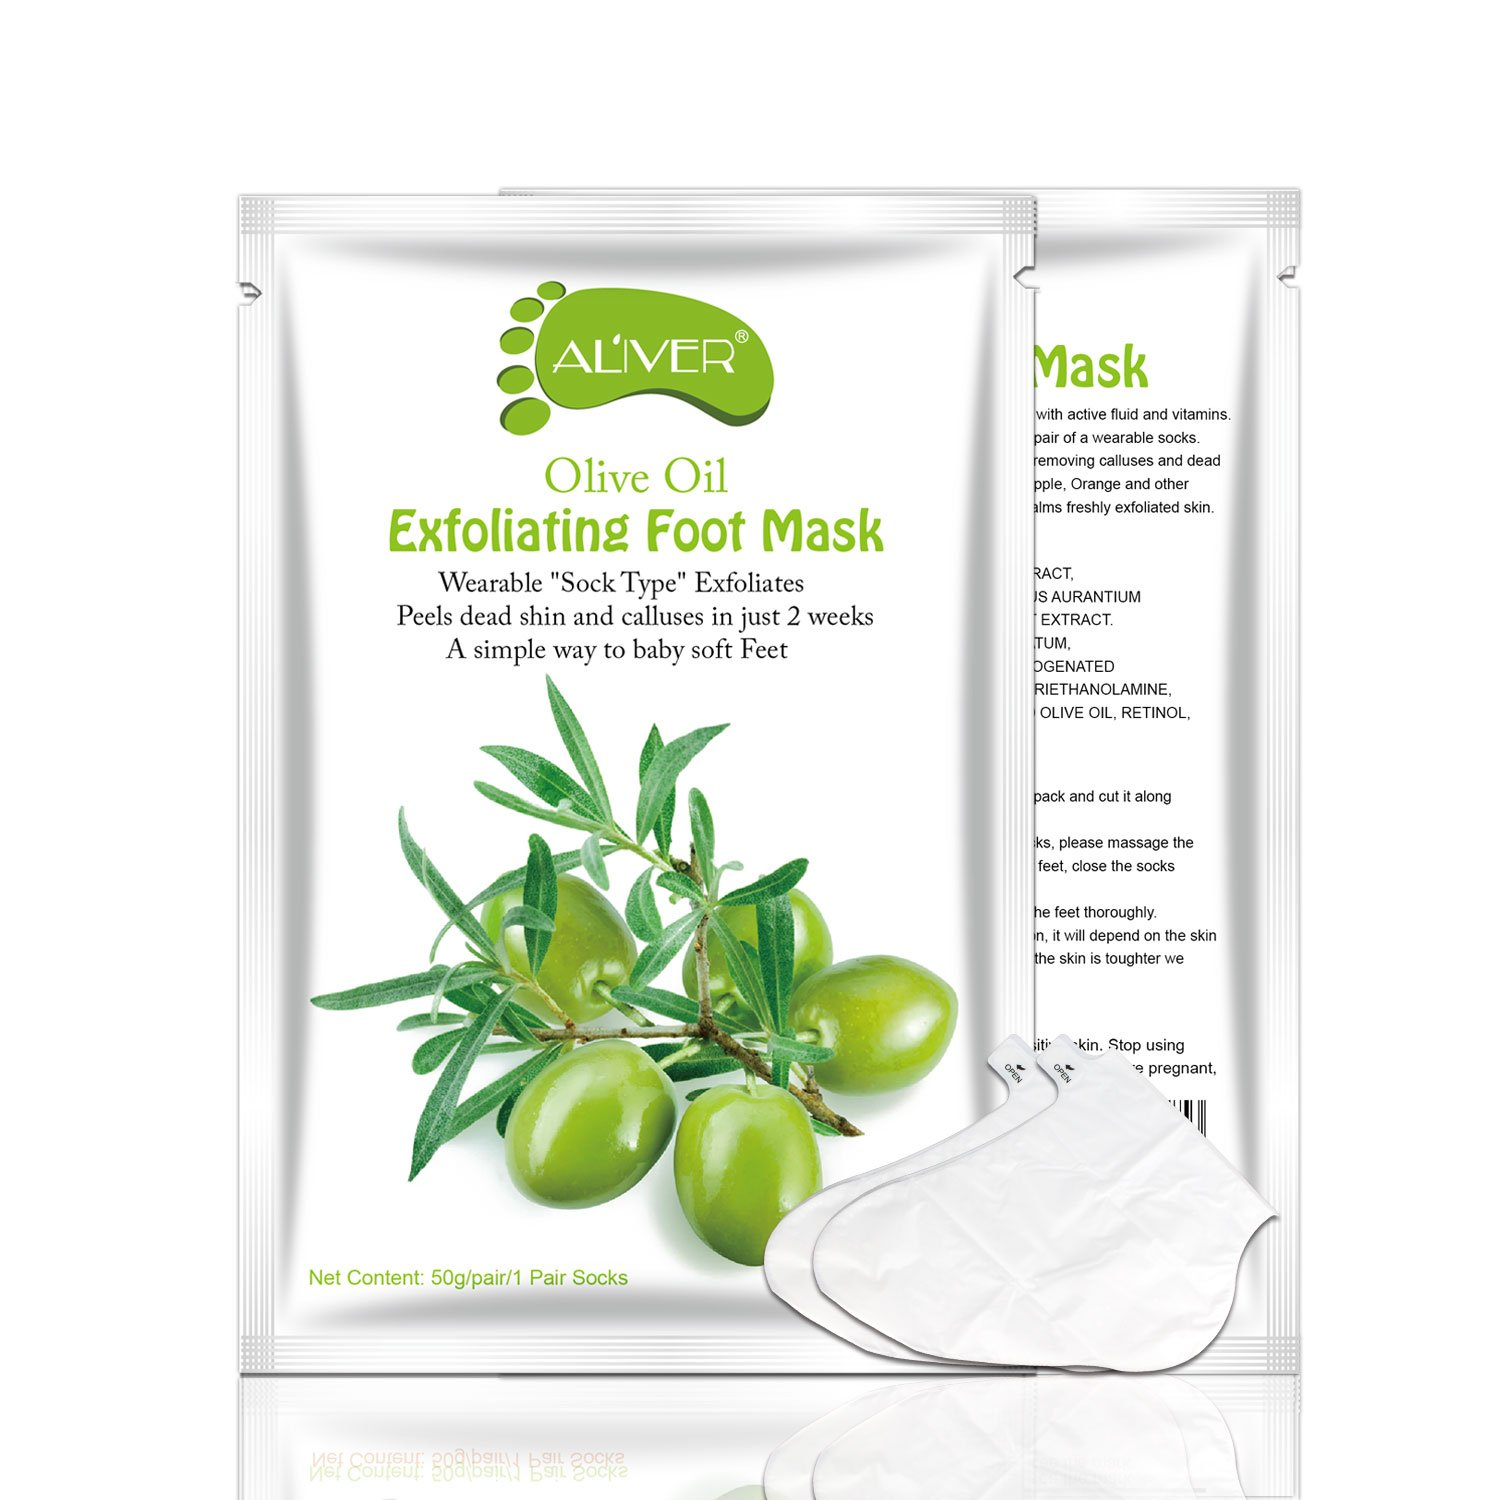 3 Pairs Exfoliating Foot Peeling Mask Organic Dead Skin Remover Silky Soft Baby Your Feet Naturally (Olive) AL' IVER Beauty